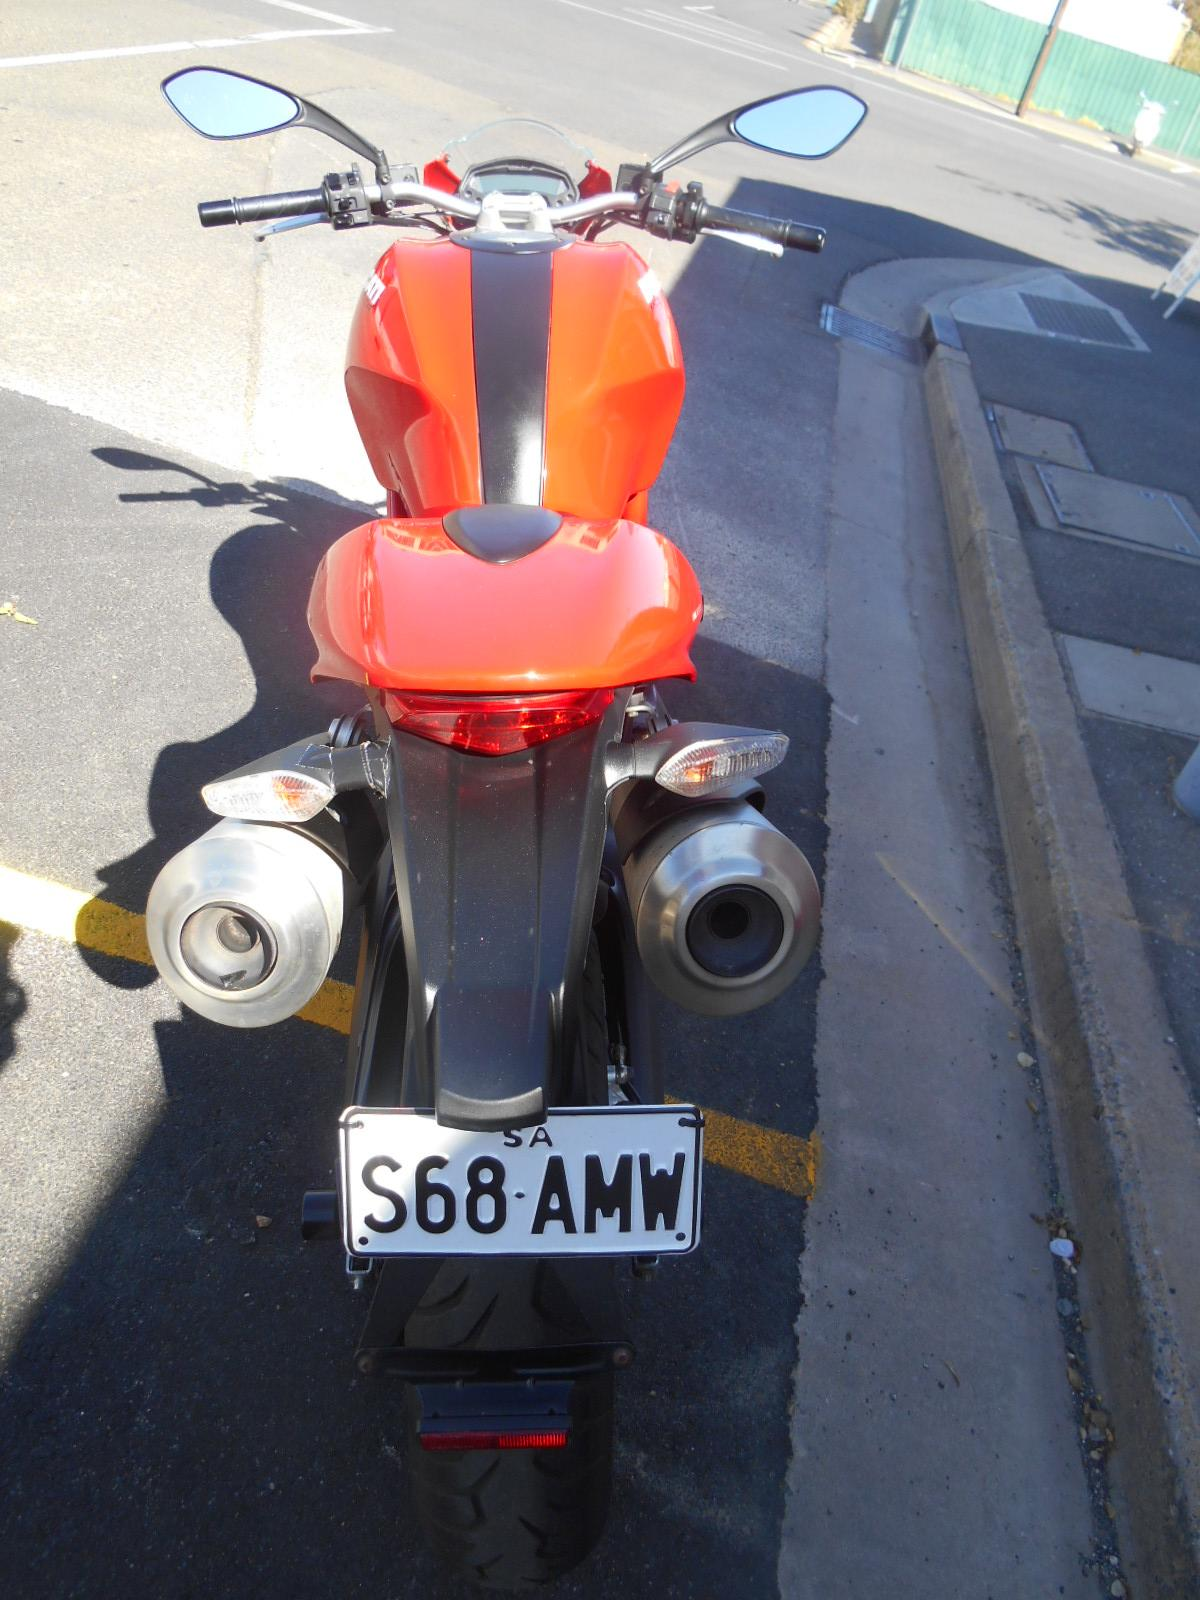 2014 Ducati Monster 659 (abs) For Sale in East Keilor at